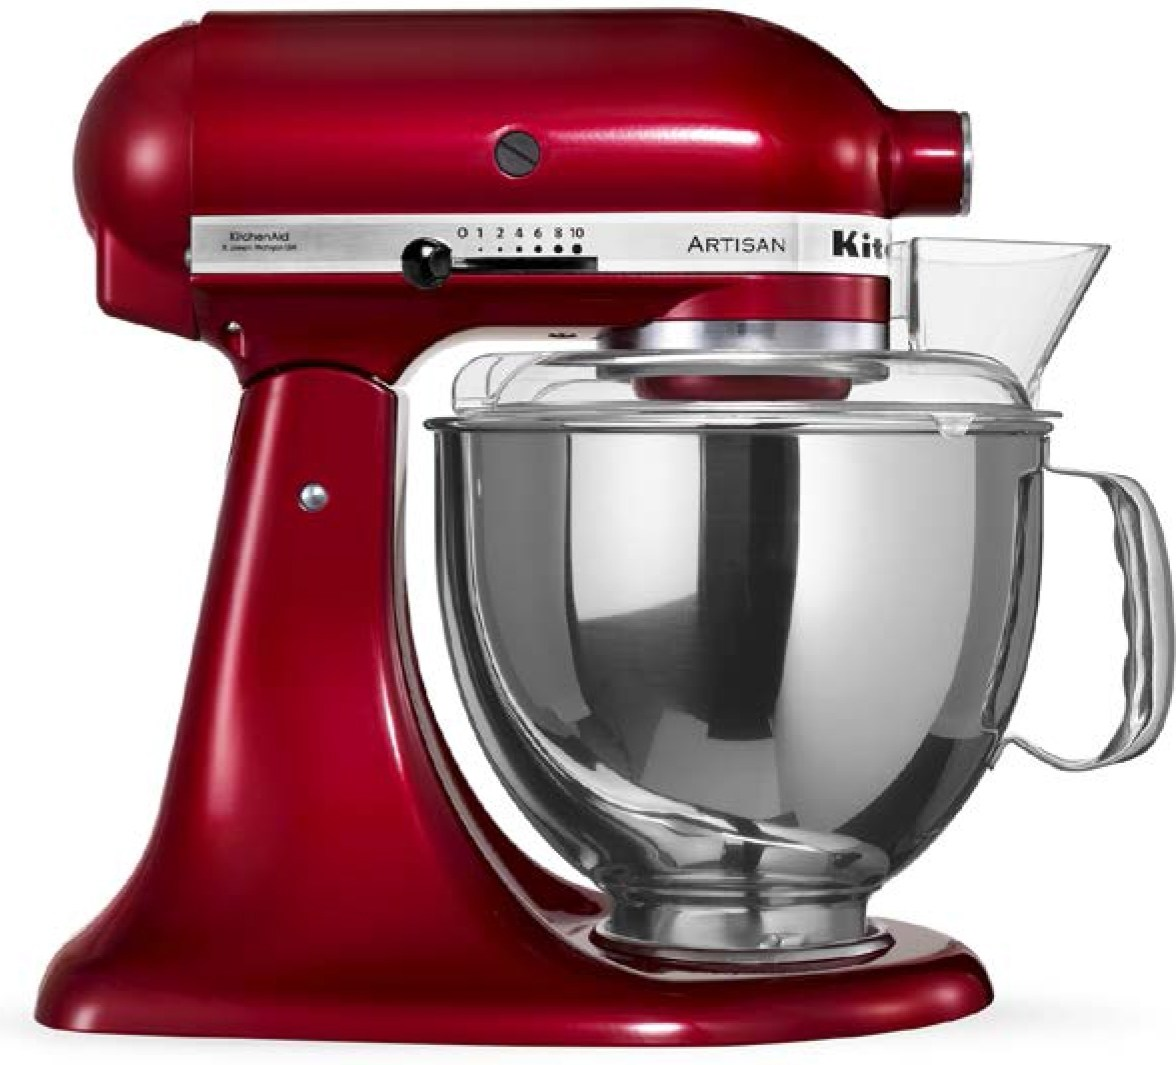 KitchenAid Artisan 5KSM150